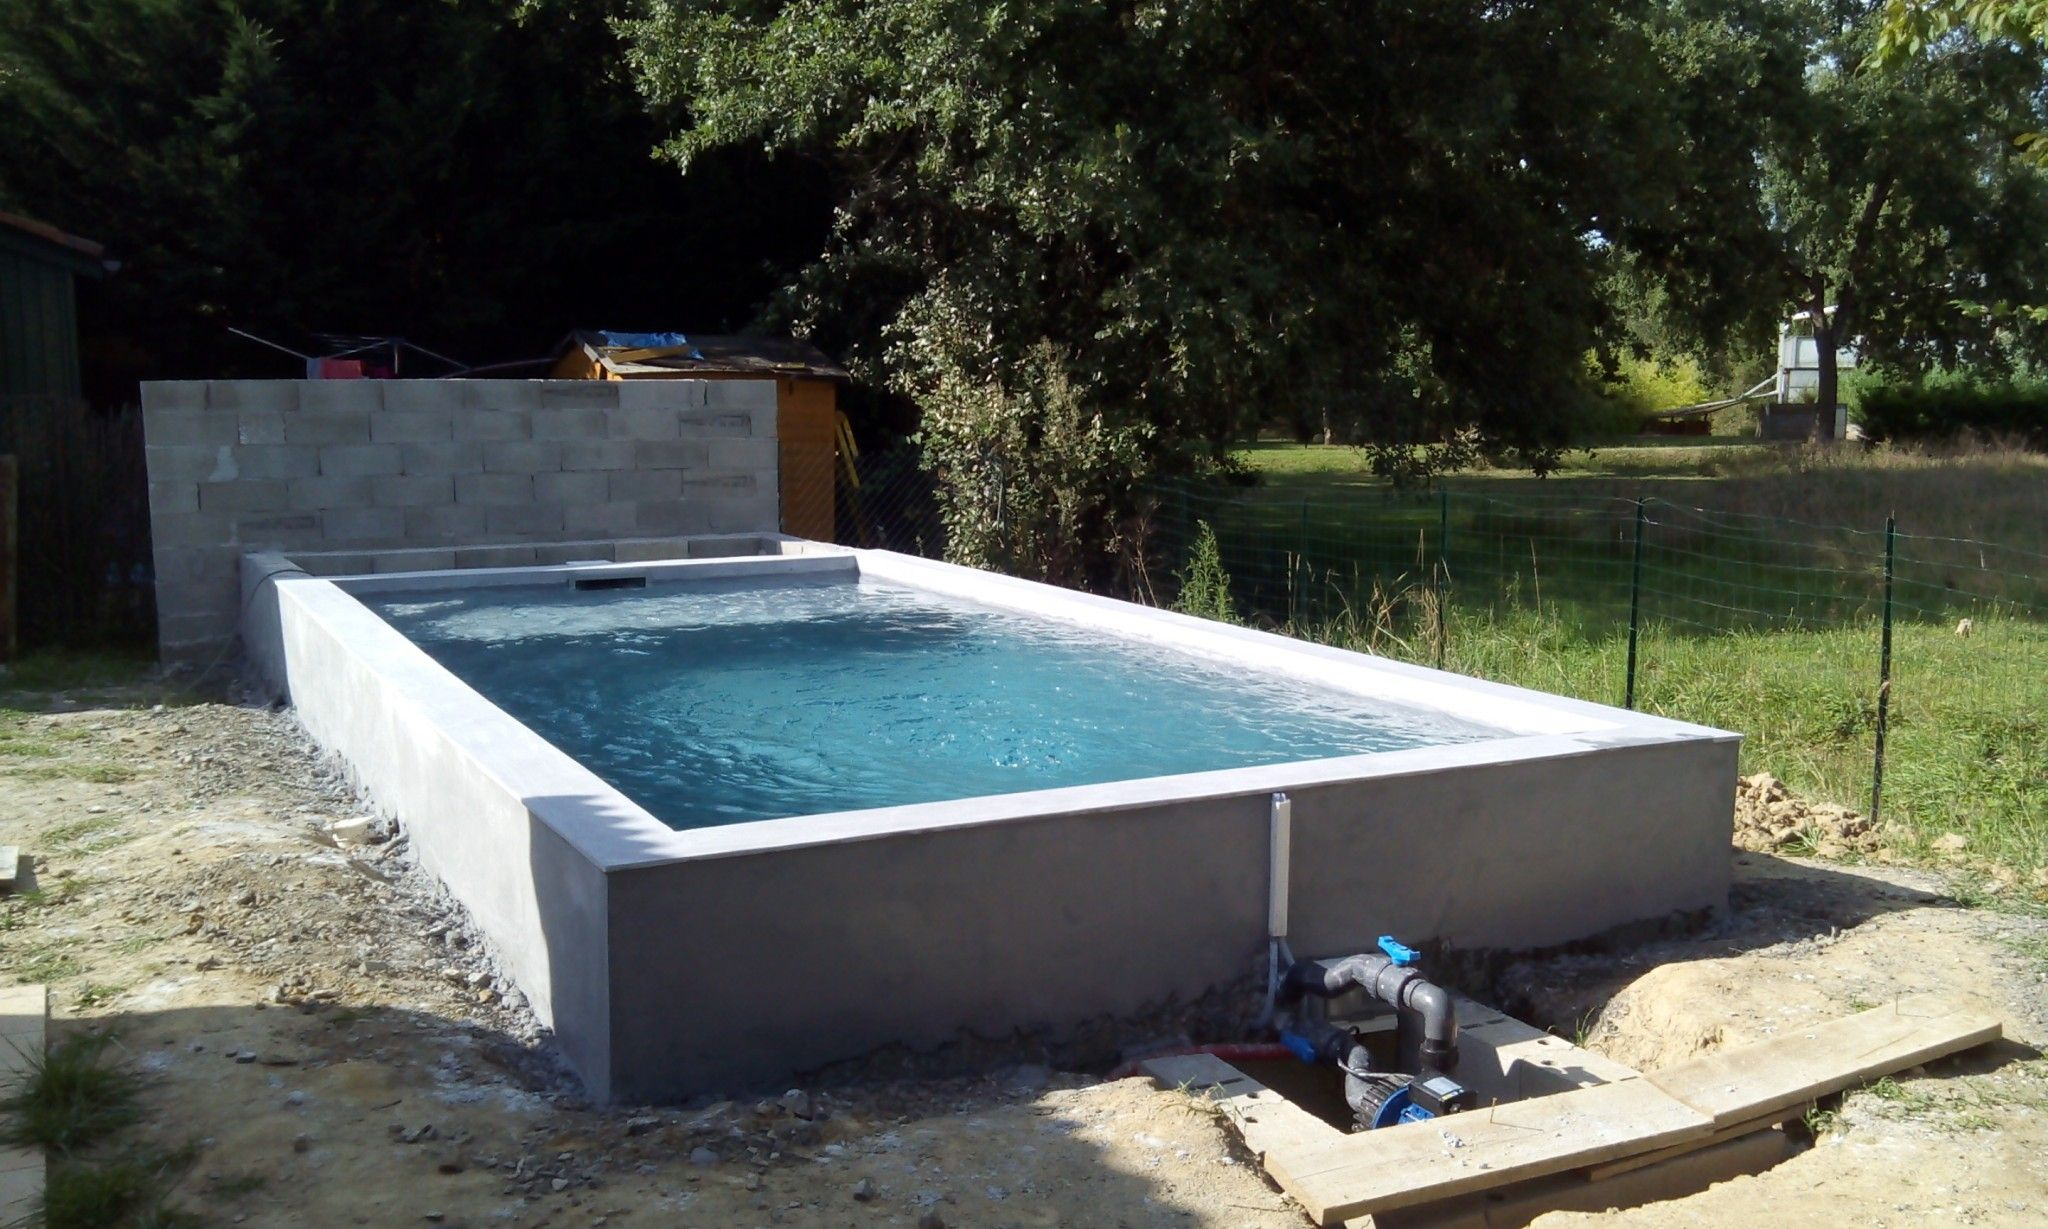 chantier mini piscine mini piscine small pool. Black Bedroom Furniture Sets. Home Design Ideas